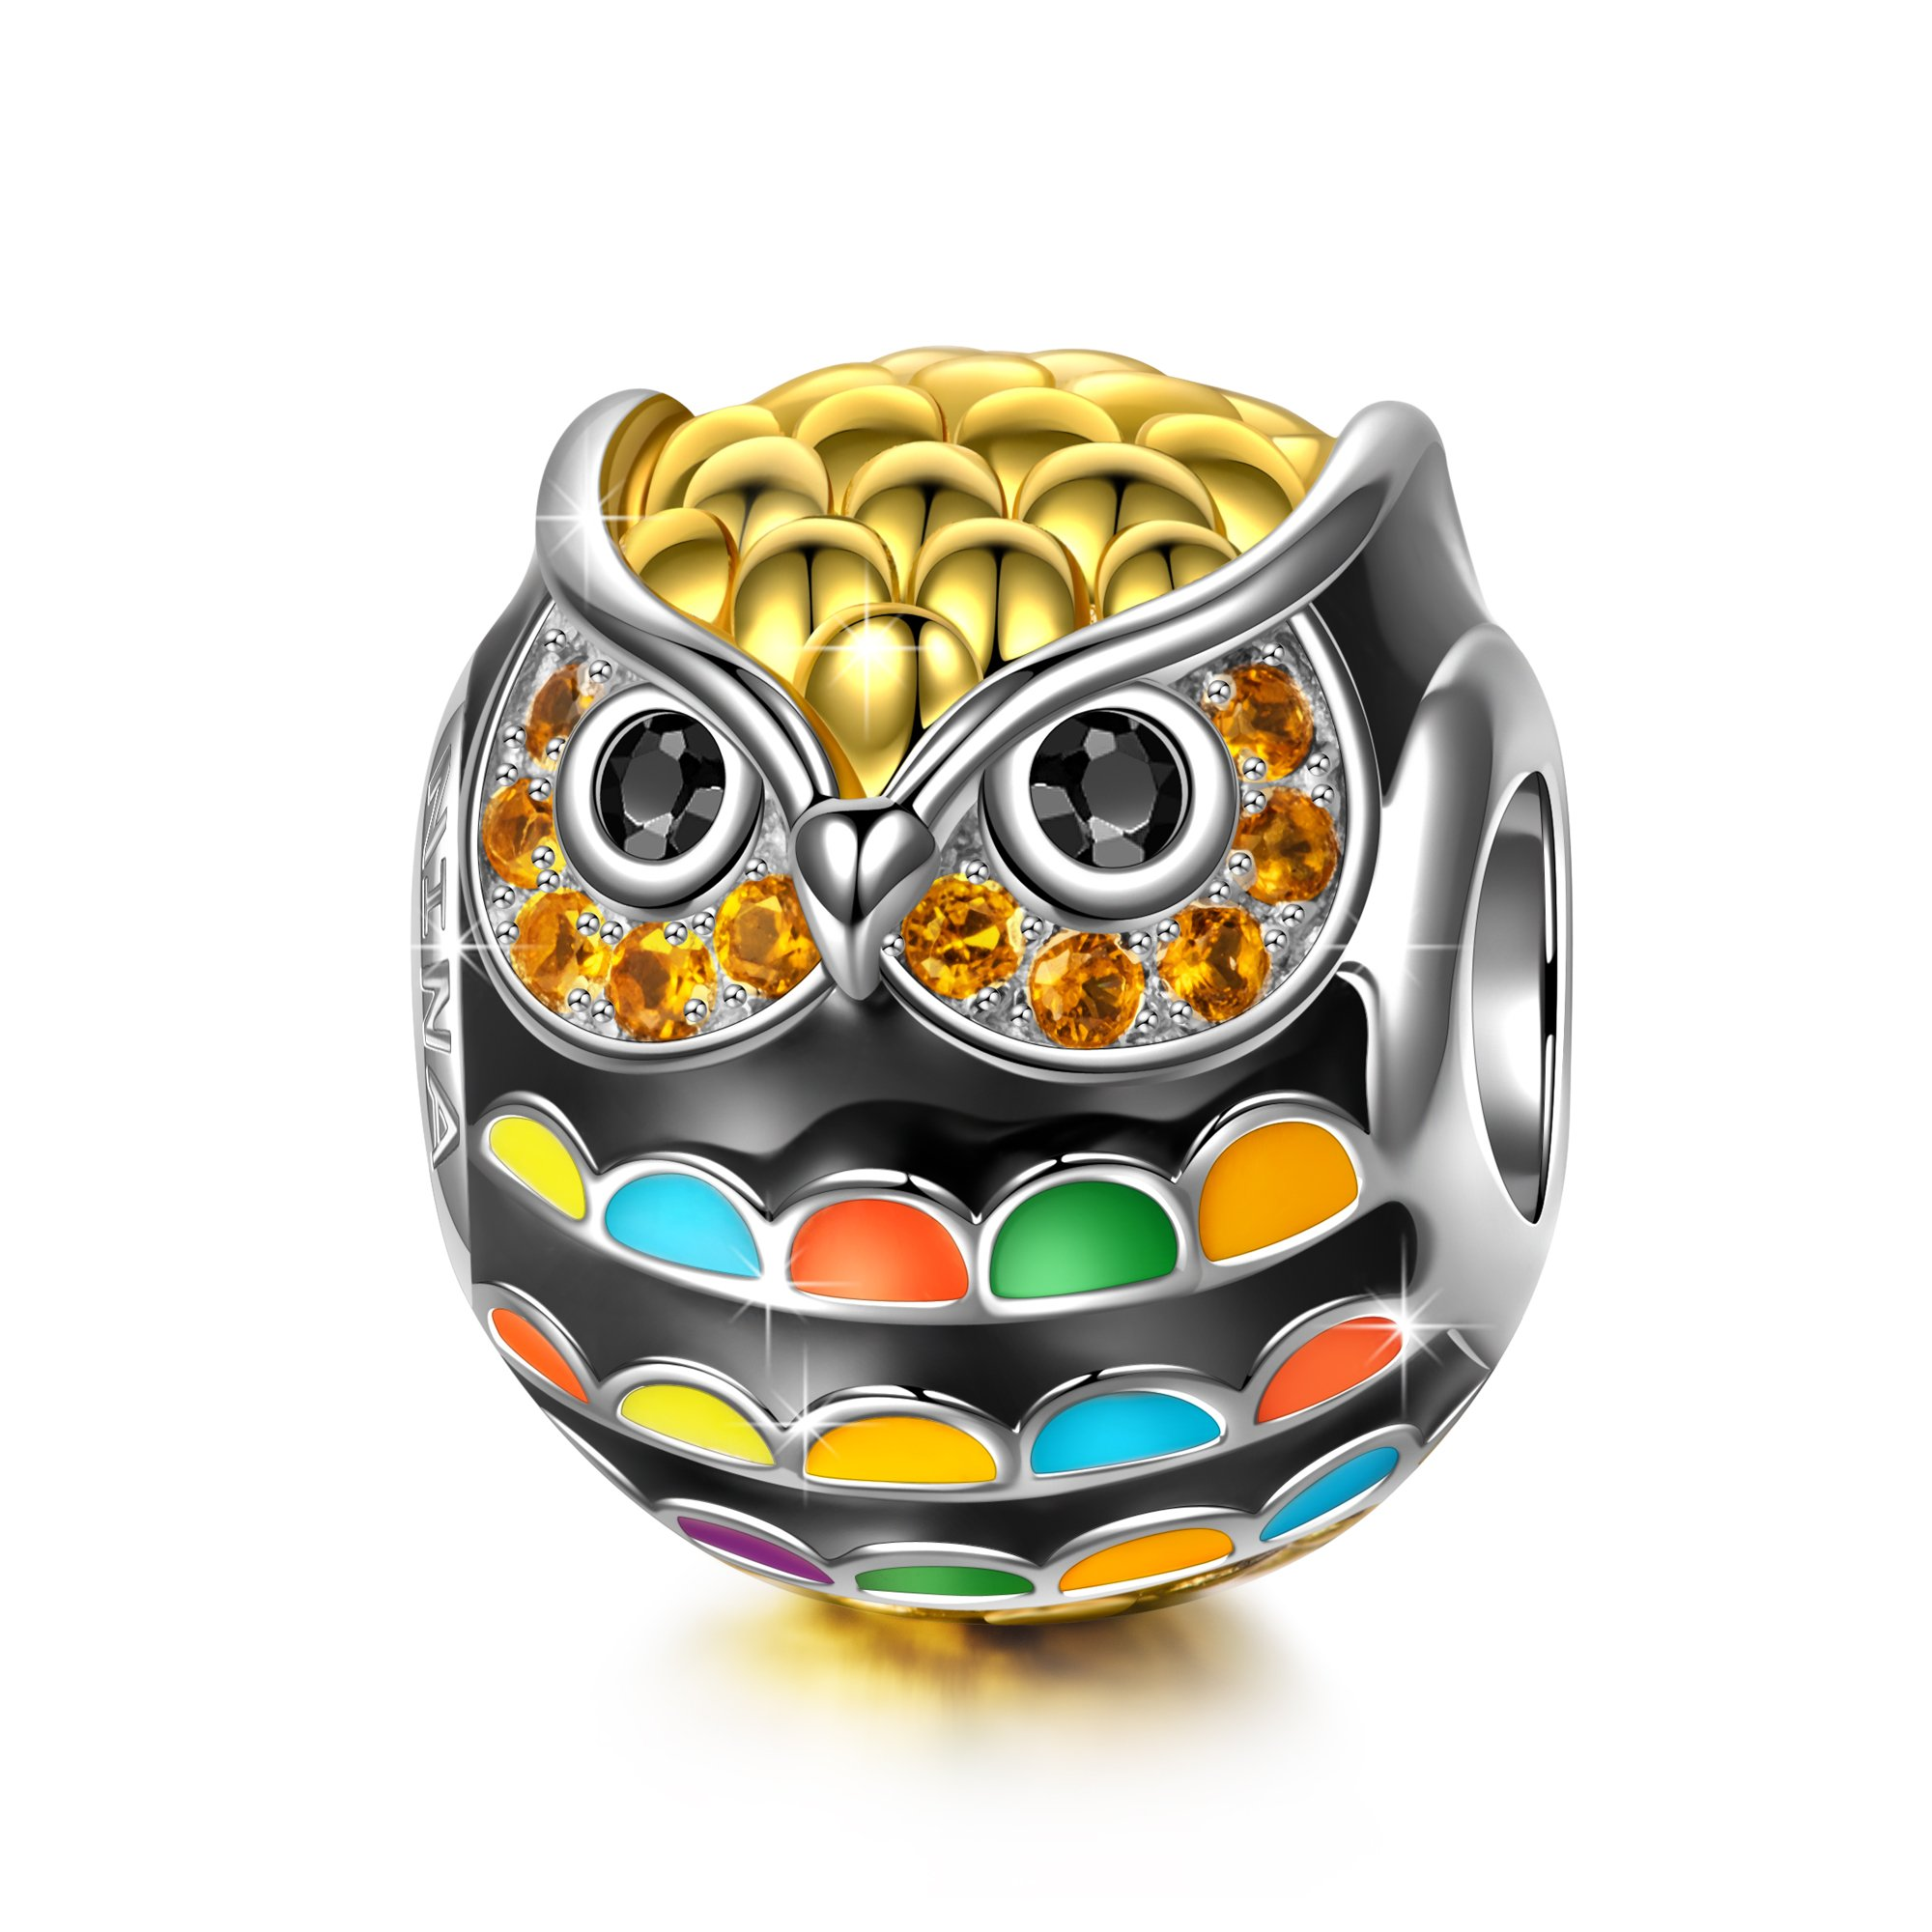 NinaQueen 925 Sterling Silver Owl Animal Bead Gold Plated Multicolor Enamel Charms for Pandöra Bracelets Birthday Anniversary Christmas Jewelry Gifts for Teen Girls Kids Sisters Daughter Girlfriend by NINAQUEEN (Image #1)